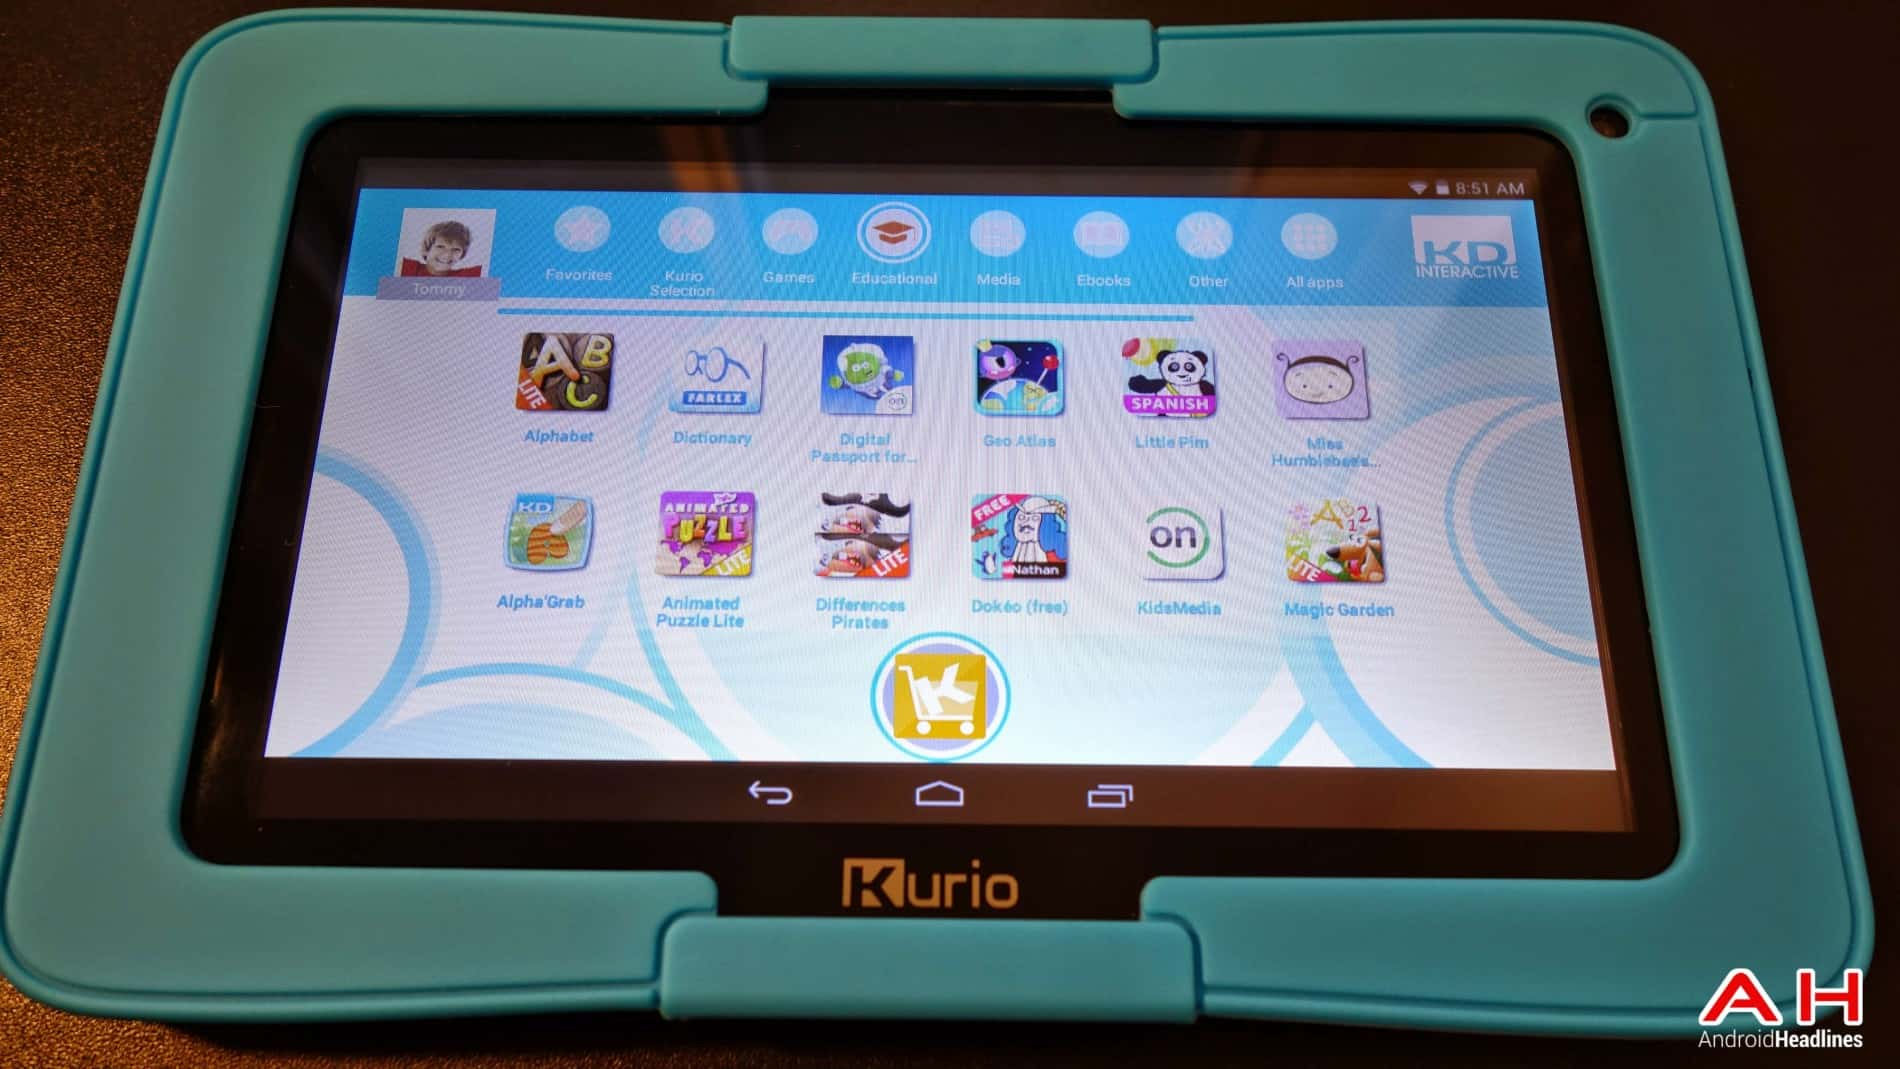 techno source kurio xtreme tablet for kids1 e1413726678500